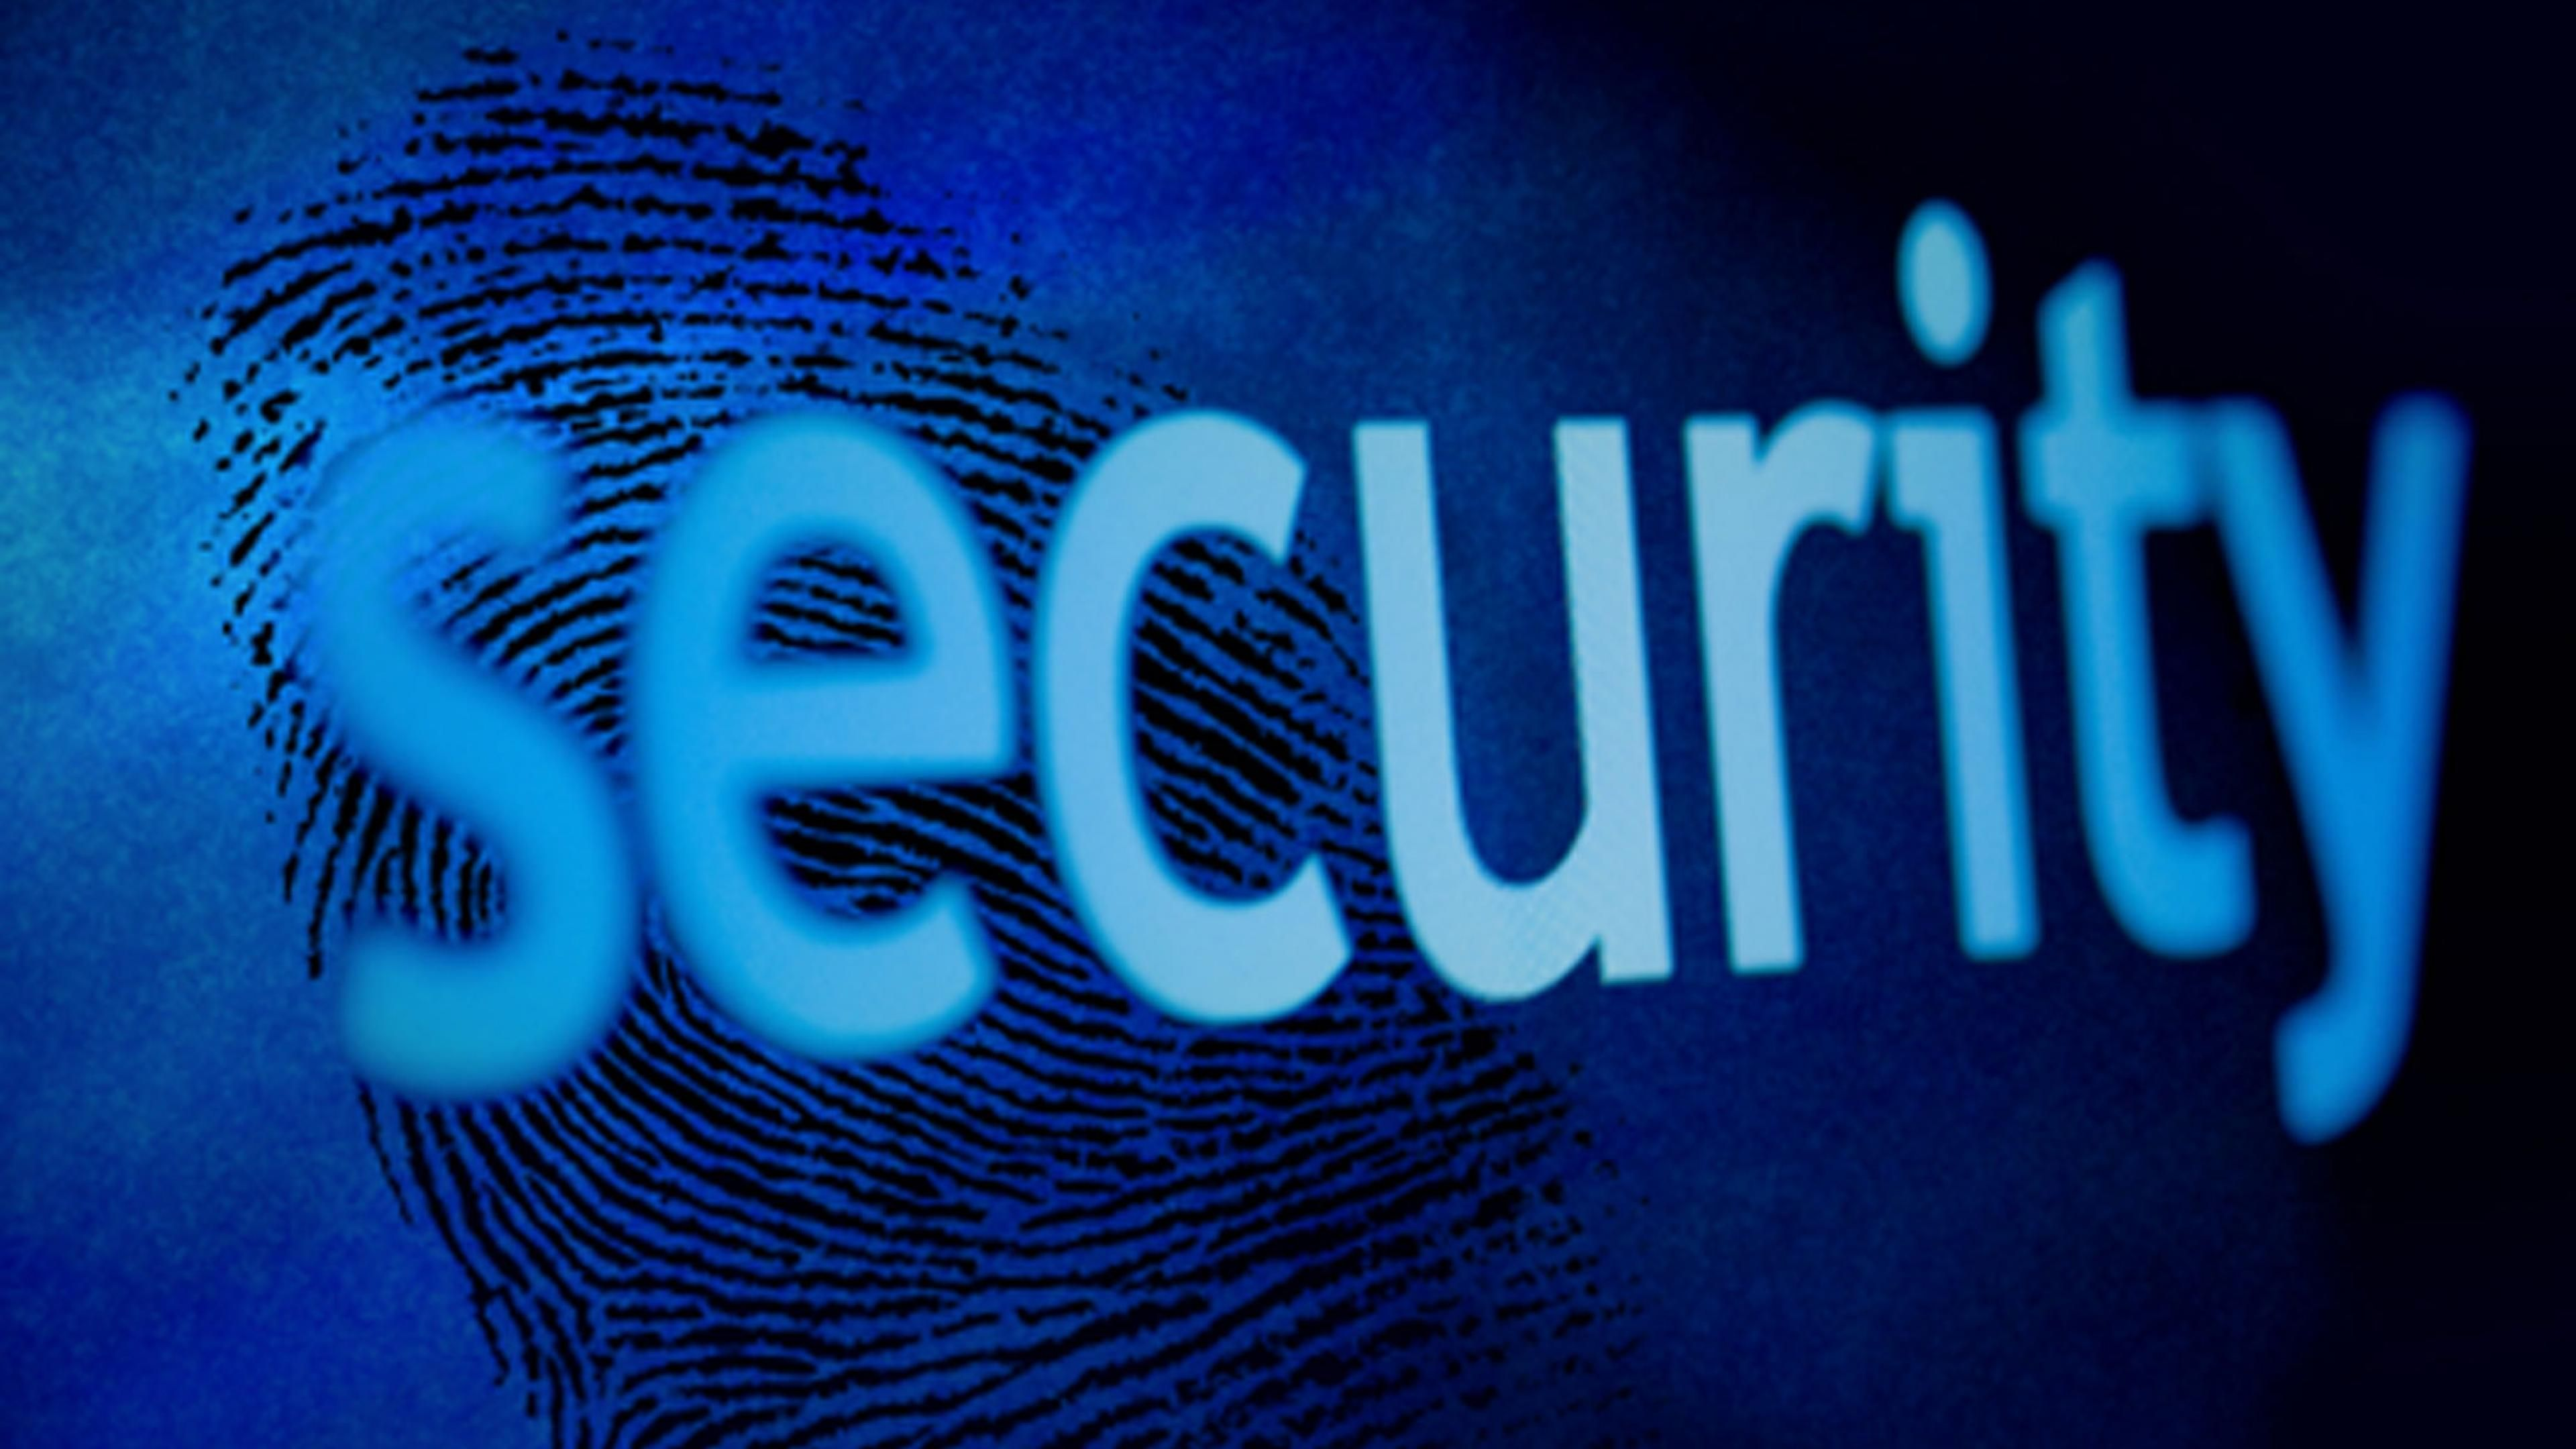 Security Wallpapers 46 Best HD Images Of High Quality